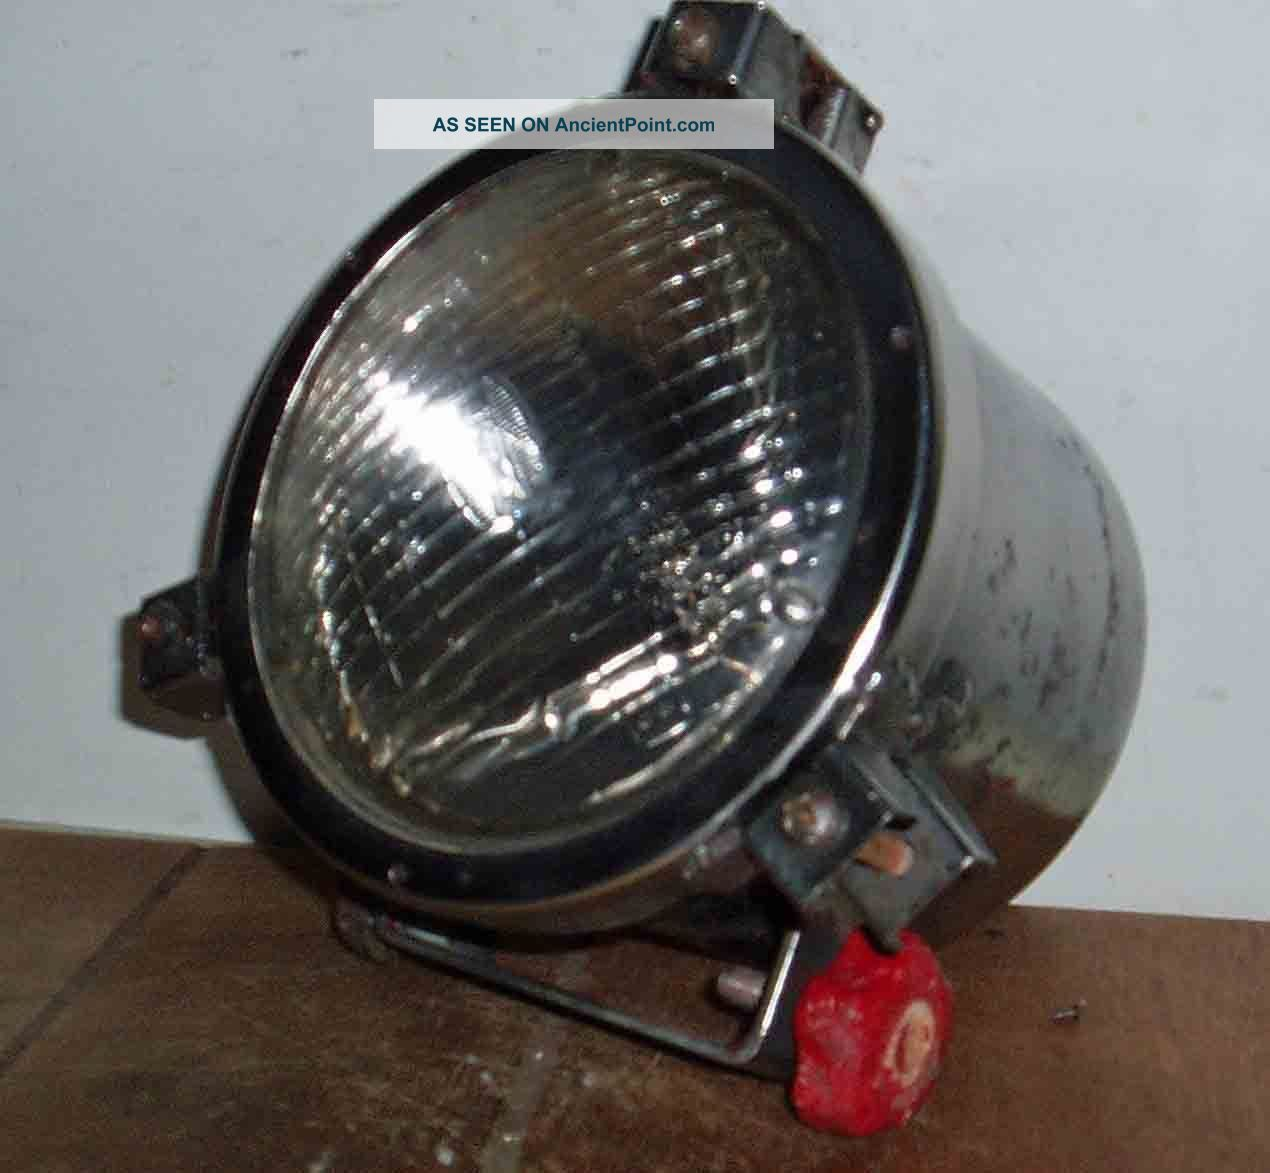 Nautical C1960 German Fishing Trawler Spot Light Electric Safety Glass Front Uncategorized photo